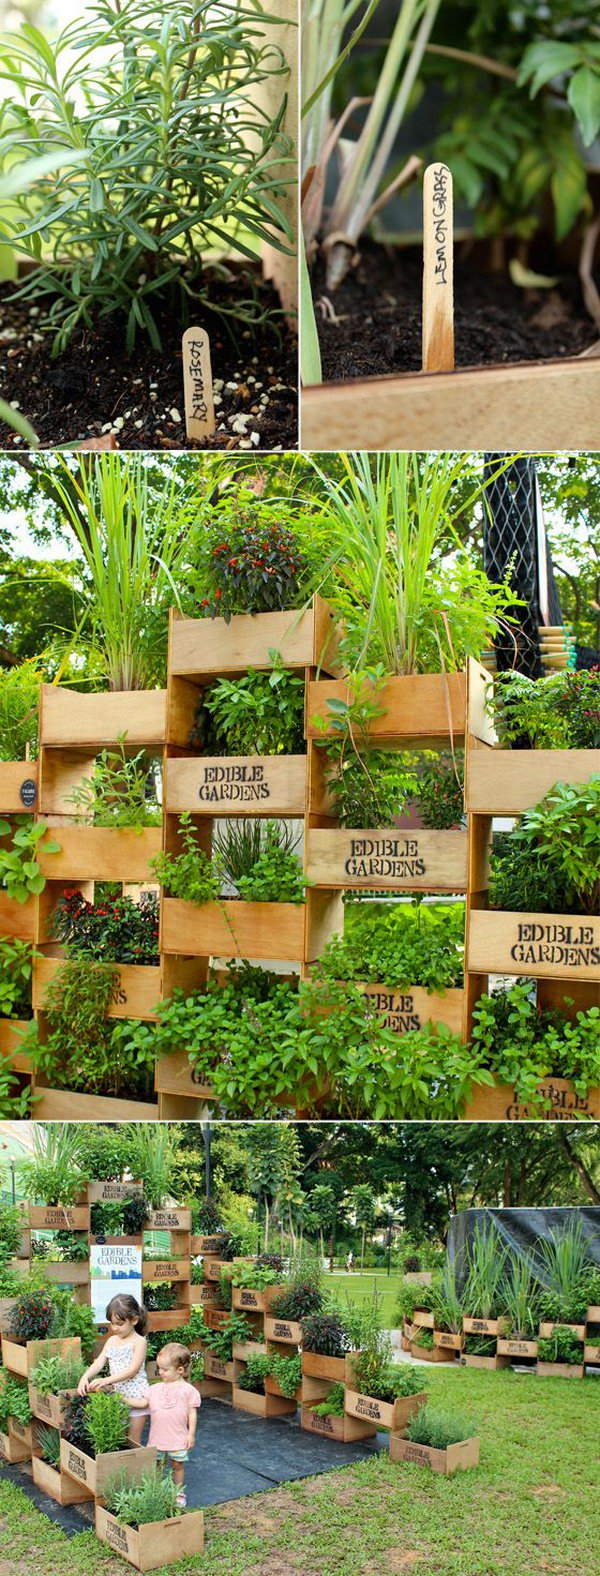 Vertical Garden From Old Crates. It Allows Plants To Extend Upward Rather  Than Grow Along